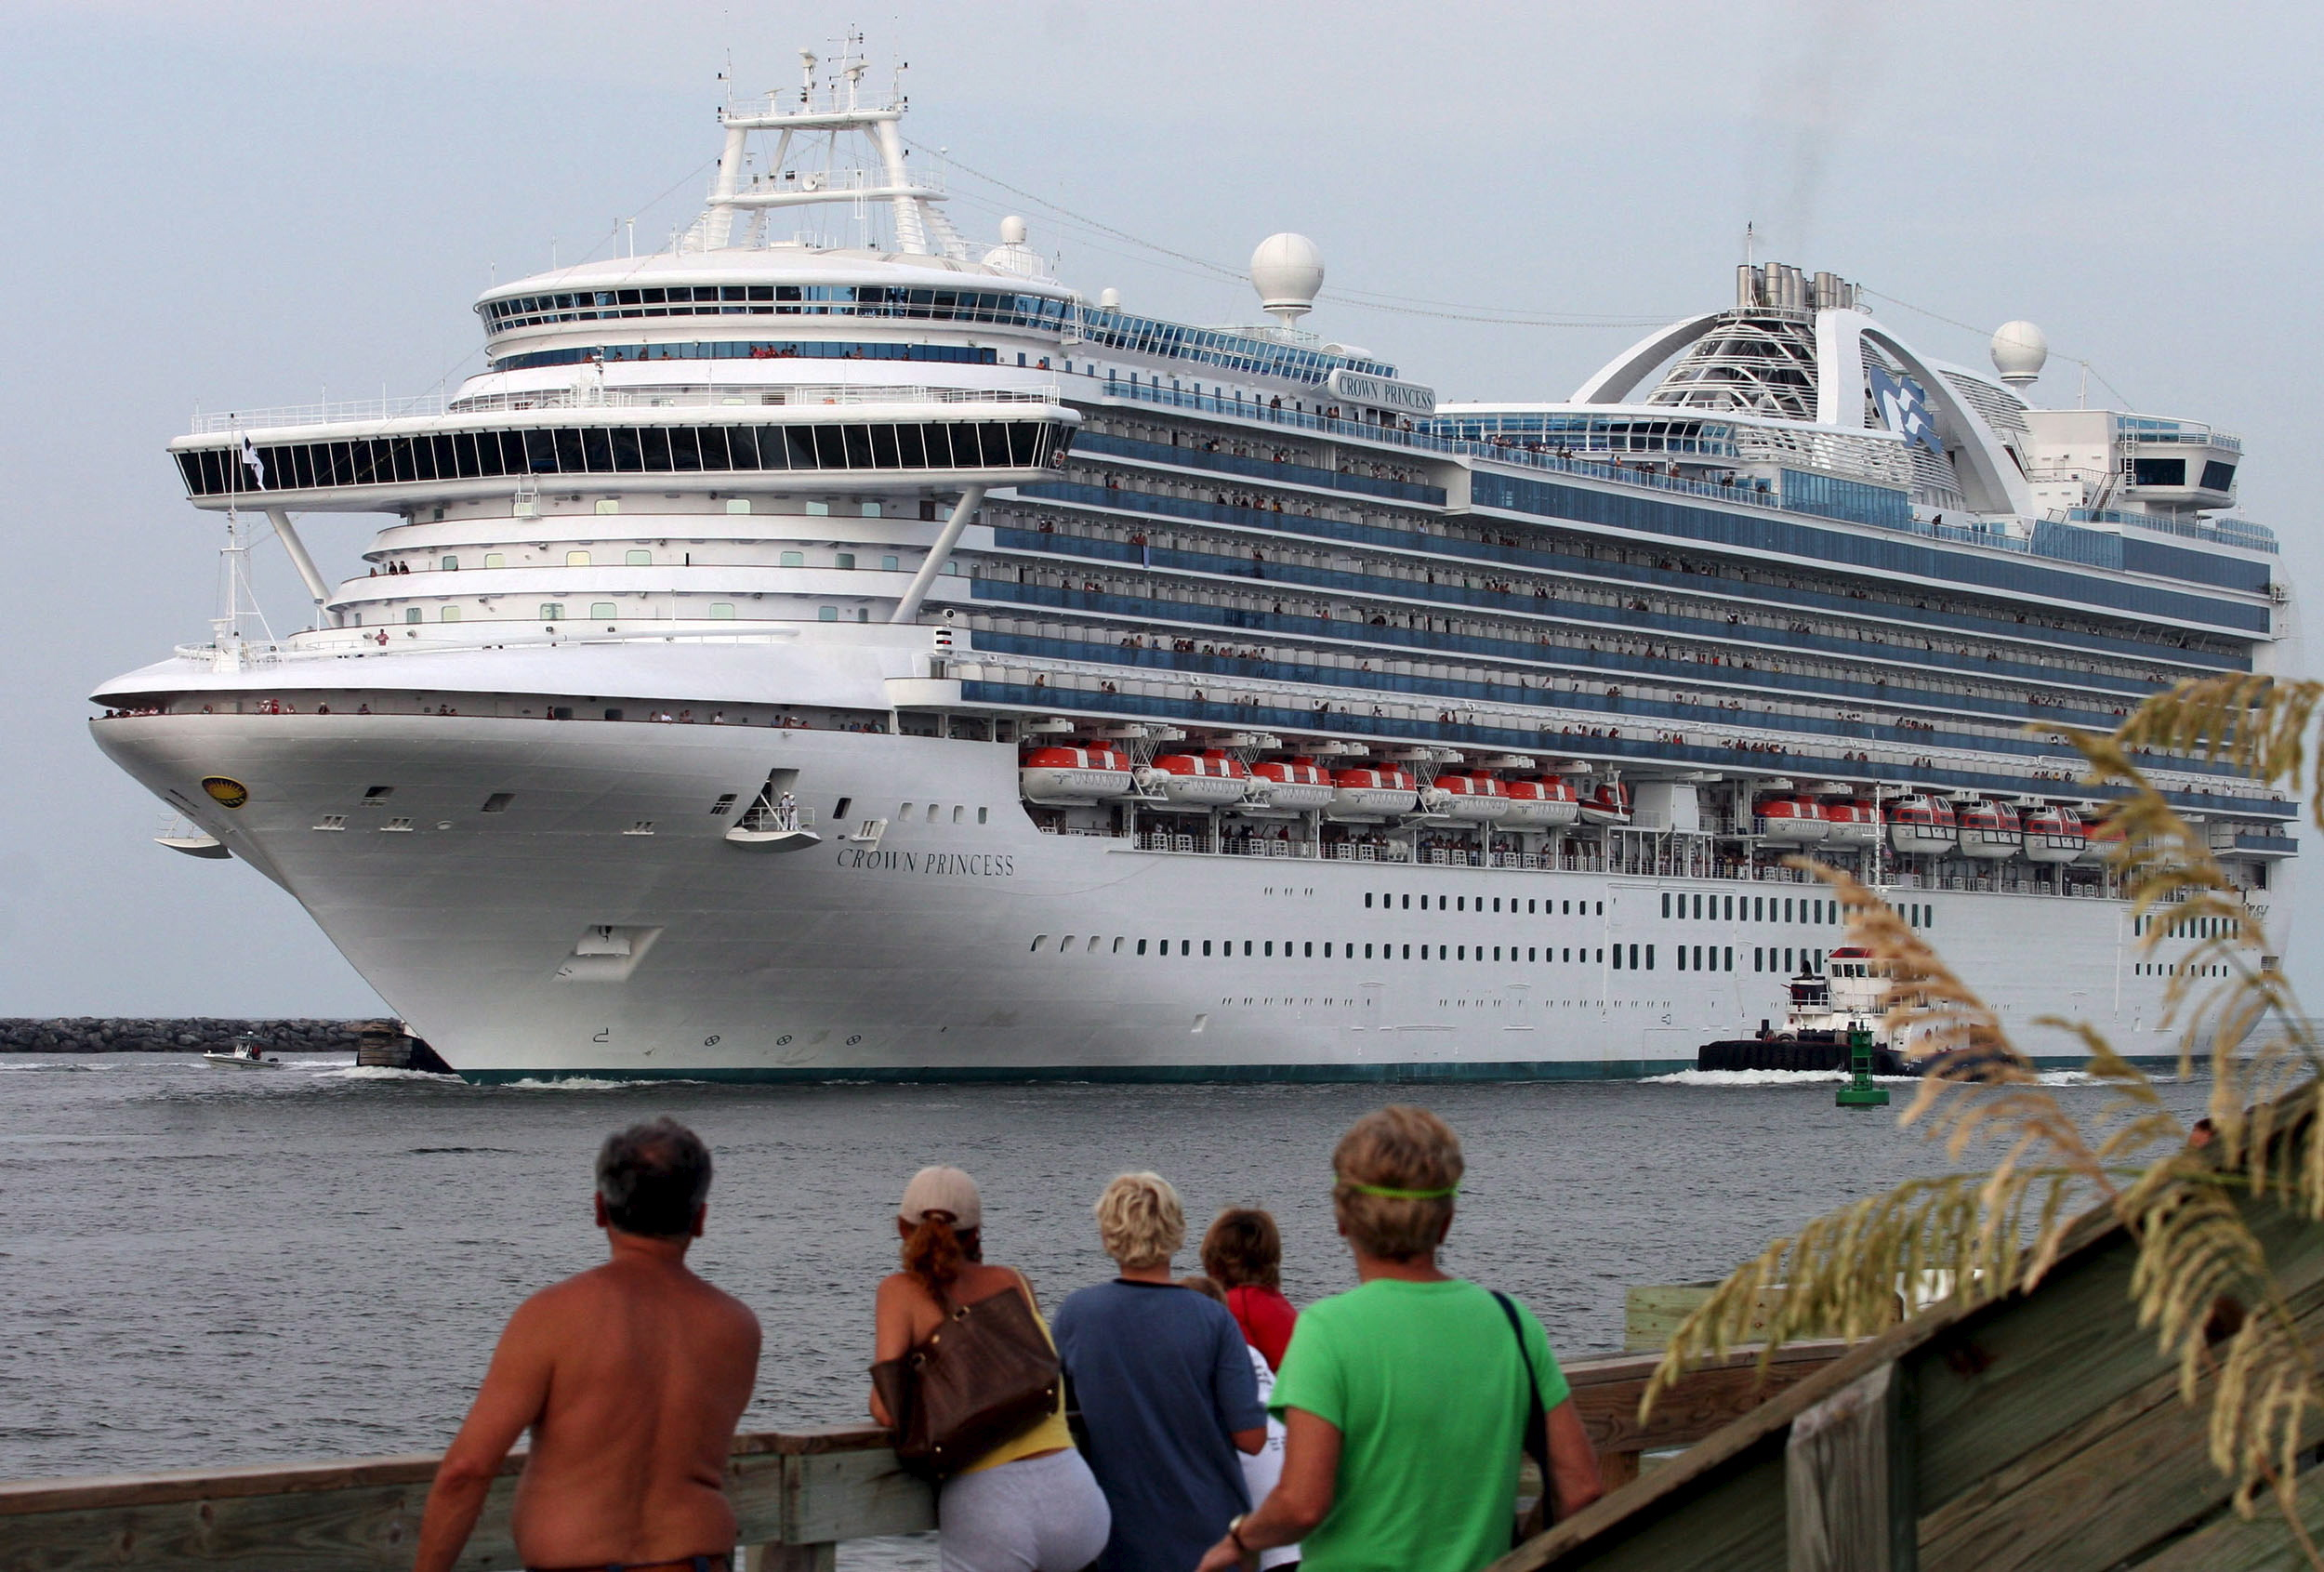 Los Angeles CA CDC People On Cruise Fell Ill With Norovirus - Los angeles cruise ship terminal